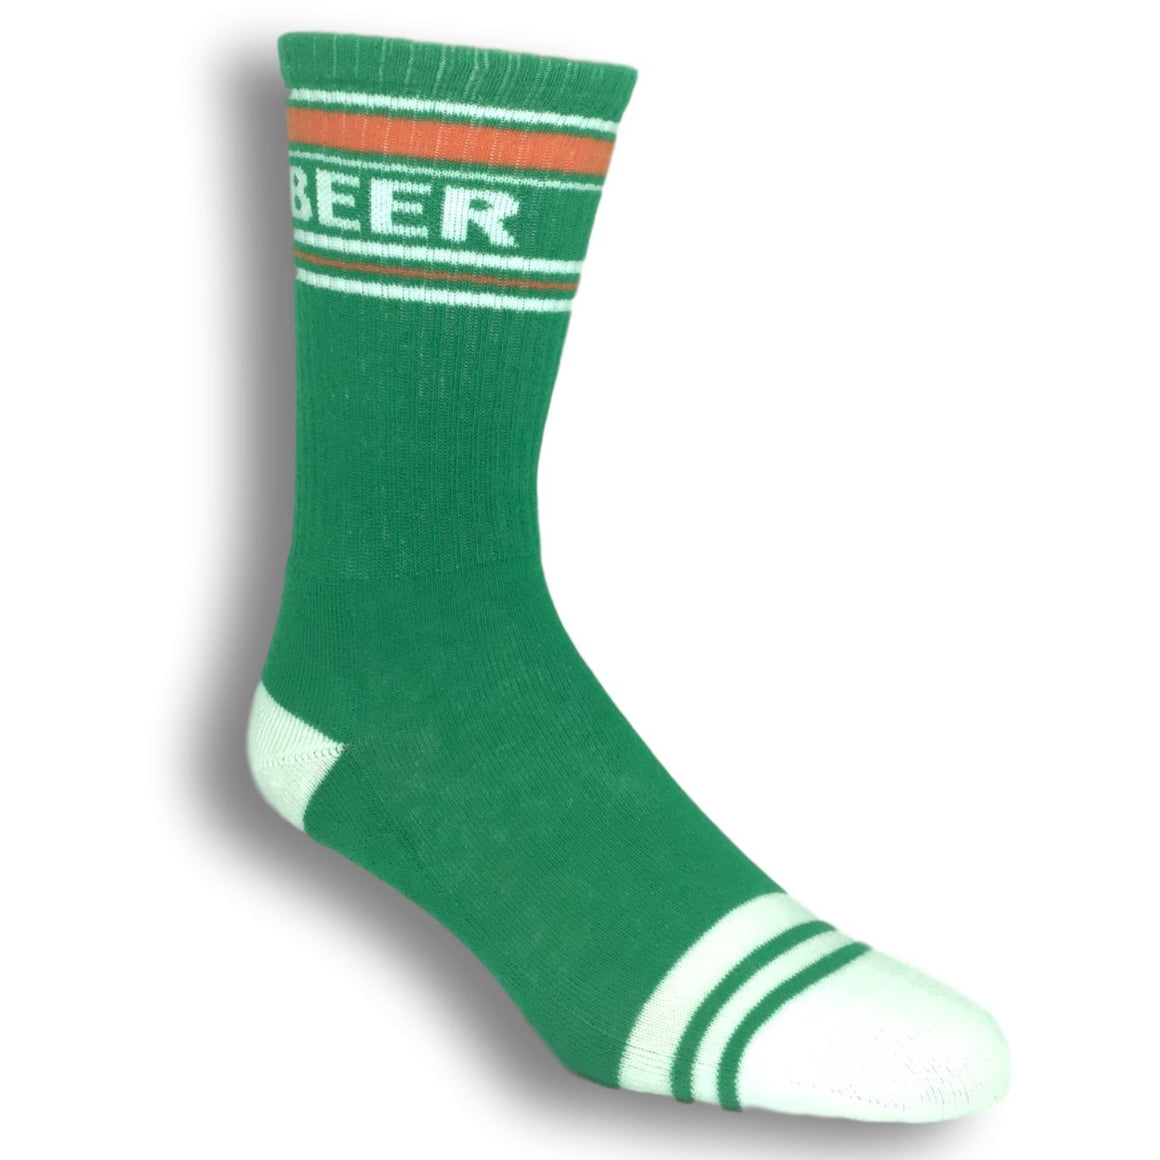 Beer Athletic Socks in Green Made in the USA by Gumball Poodle - The Sock Spot